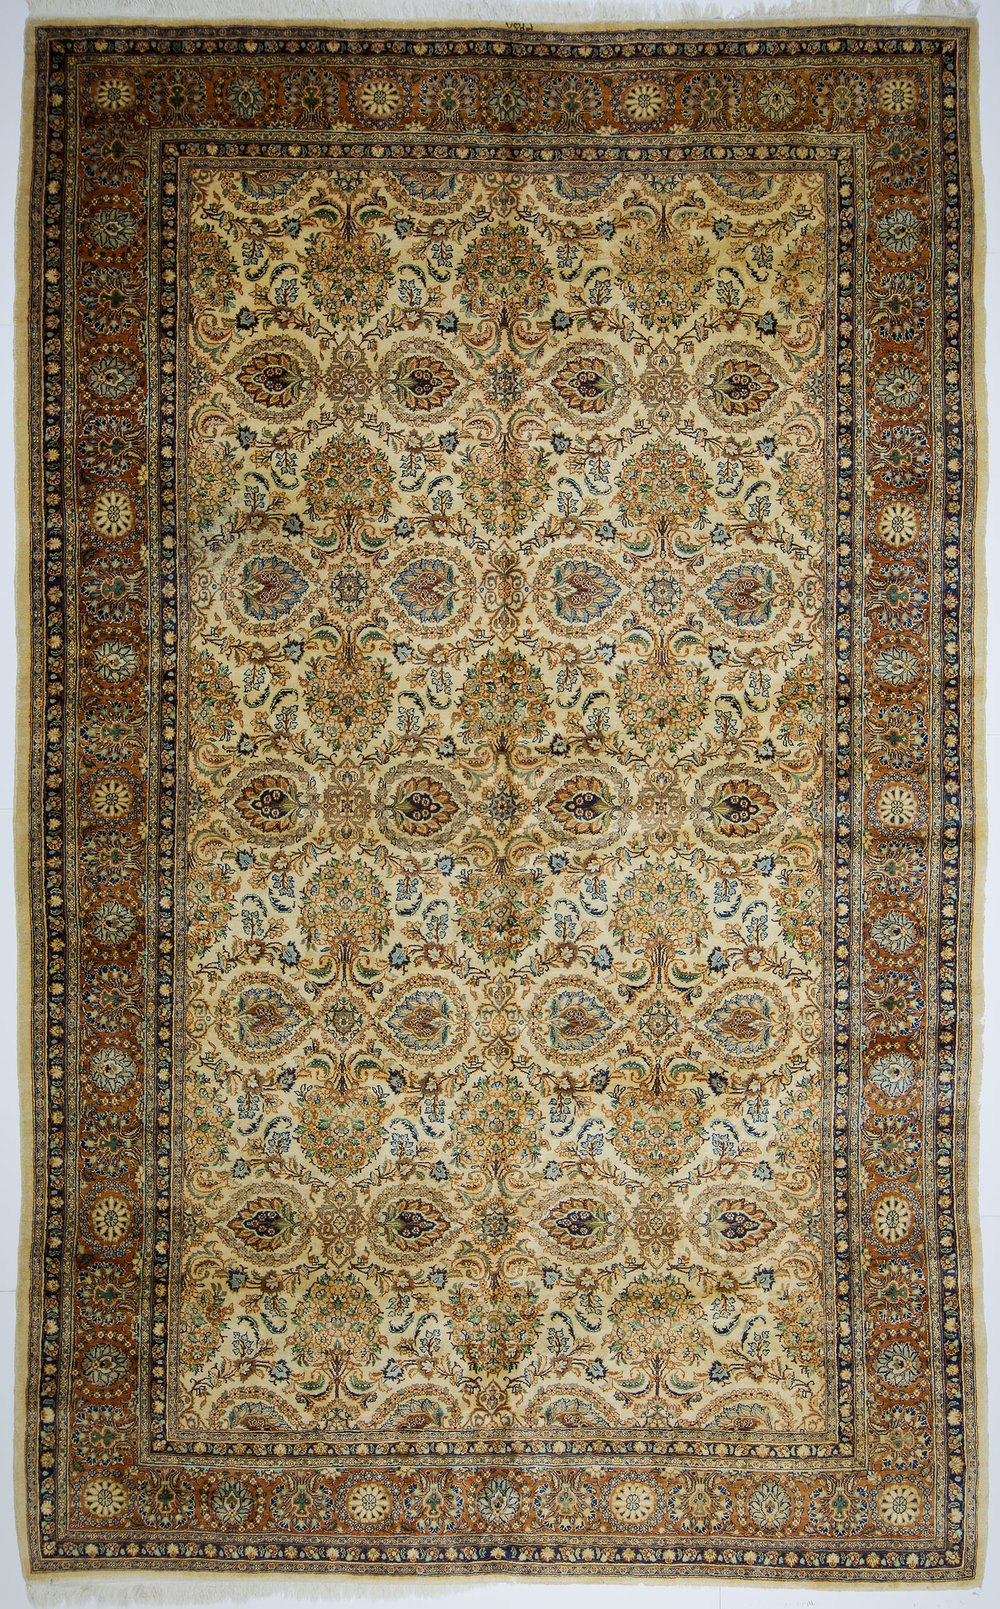 "Qazvin Carpet 15' 11"" x 9' 9"""